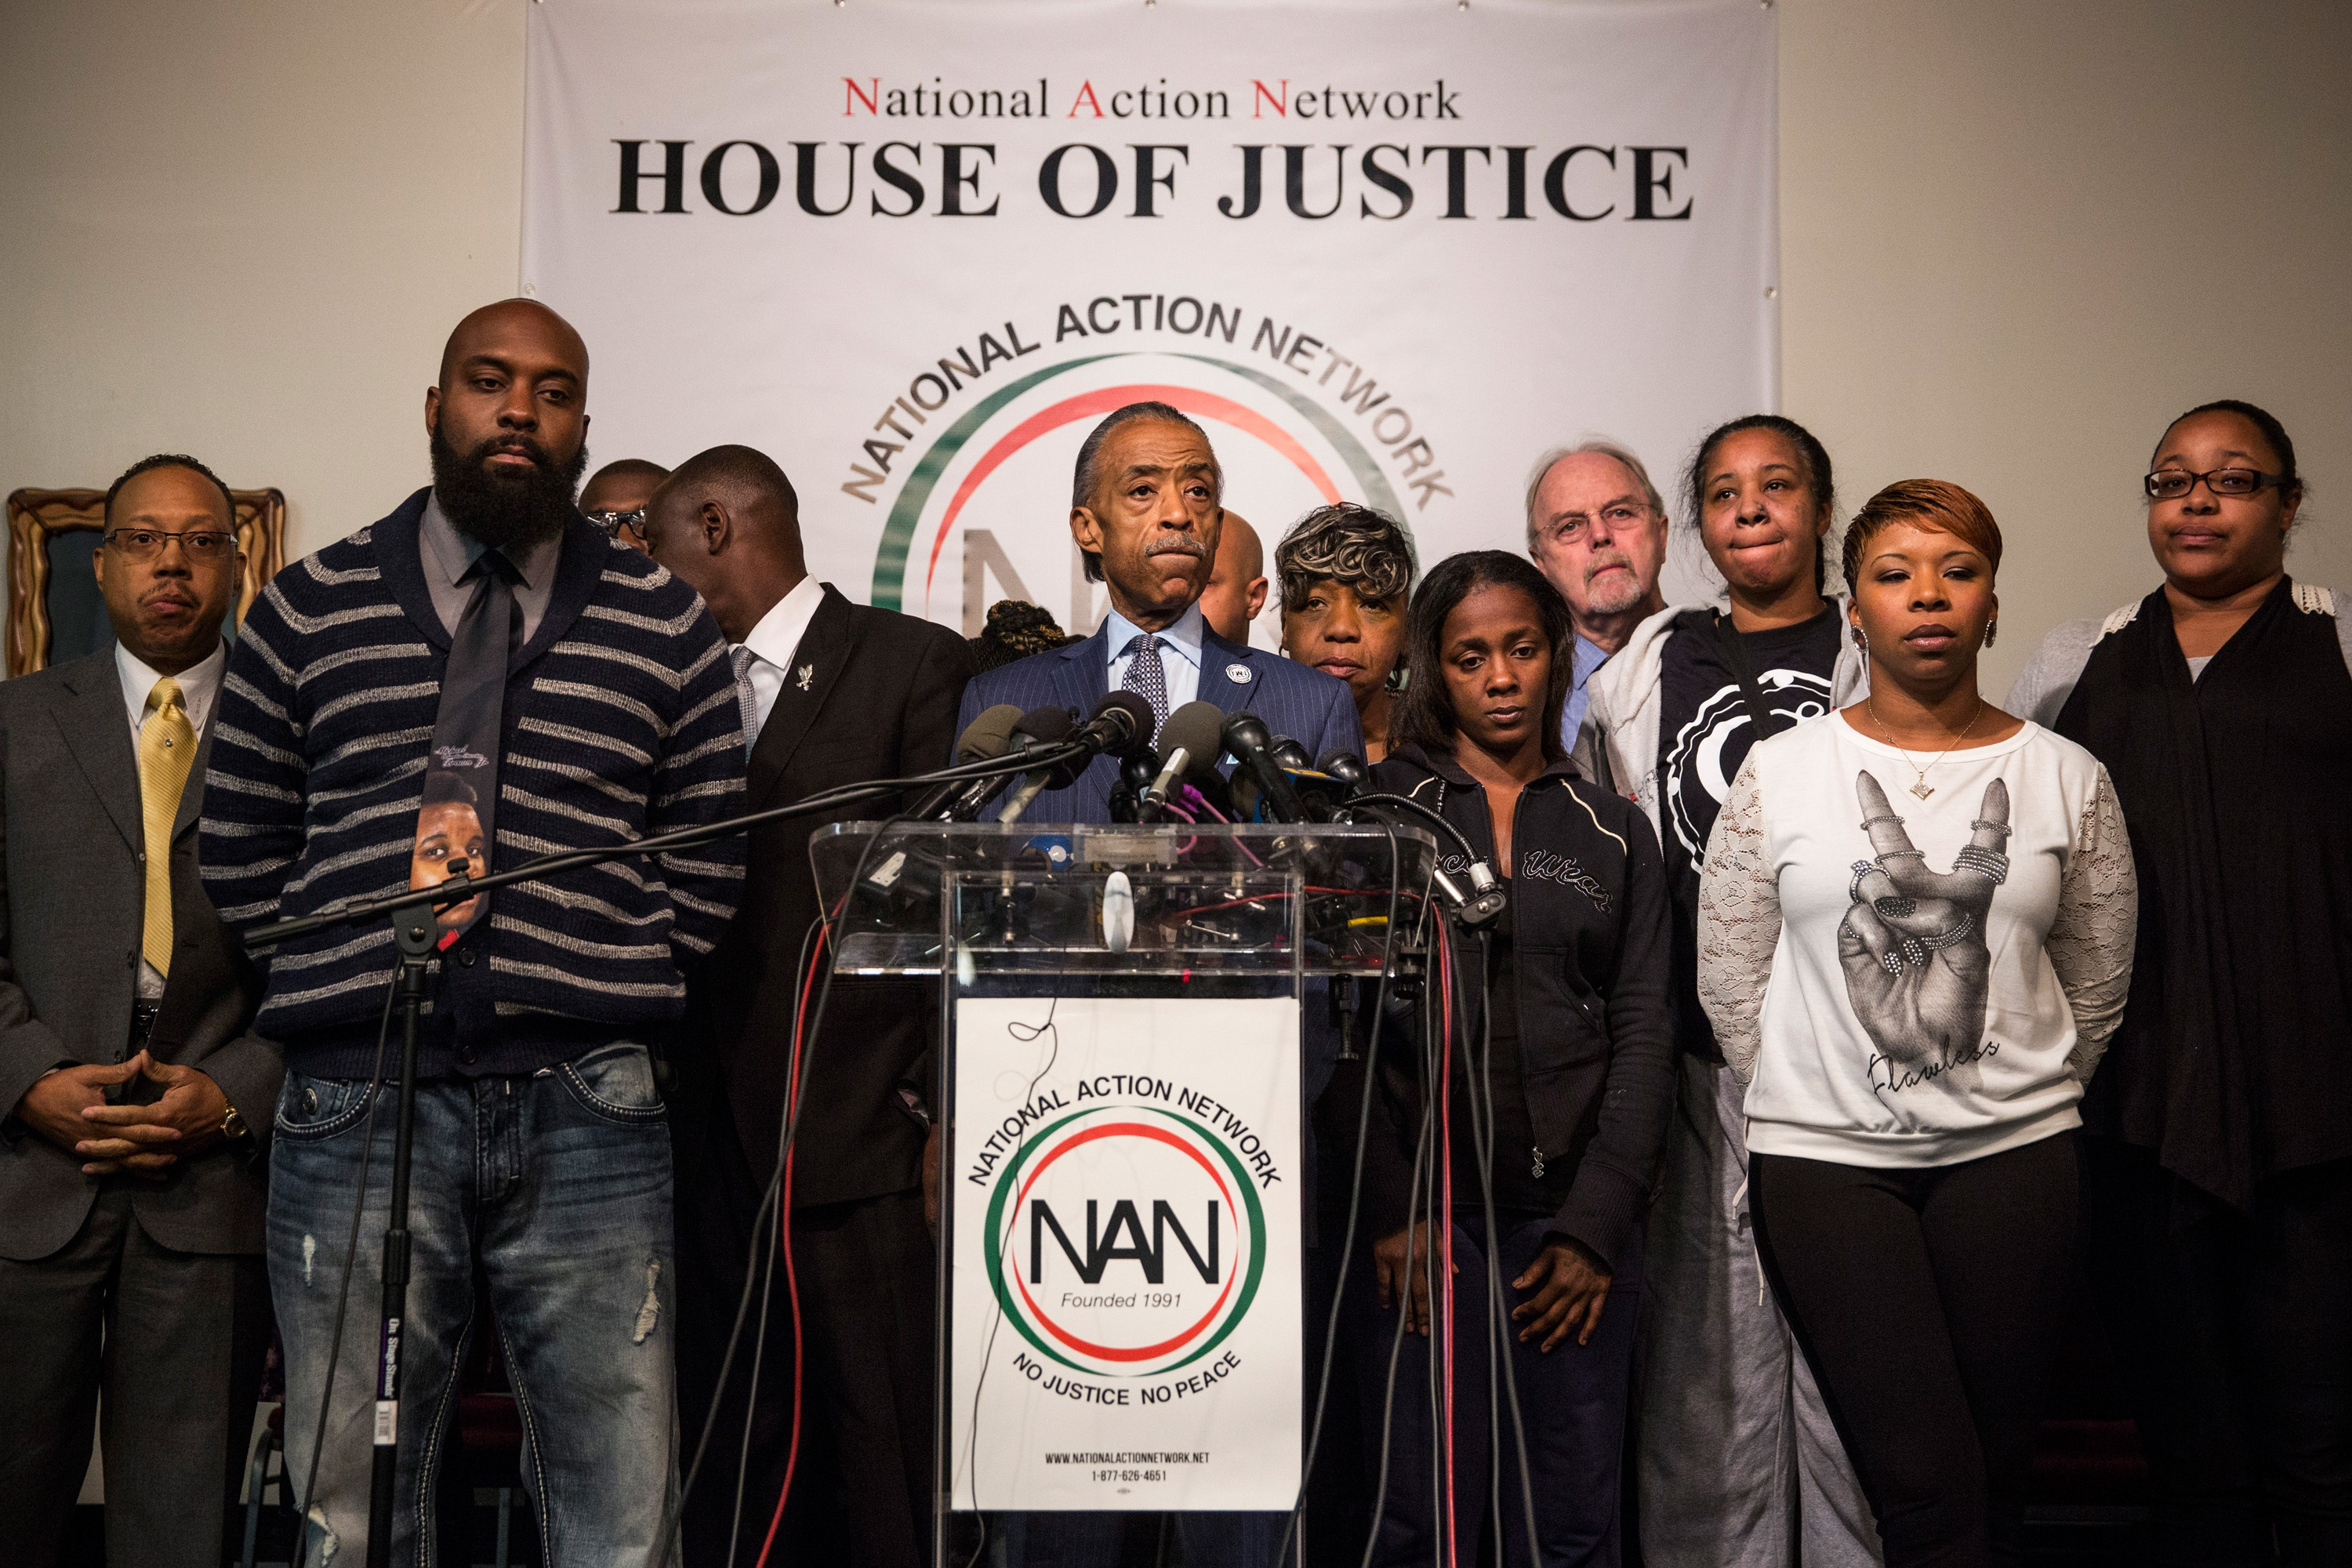 Reckless Endangerment Charge Should Have Been Considered in Eric Garner Grand Jury, Says Letitia James